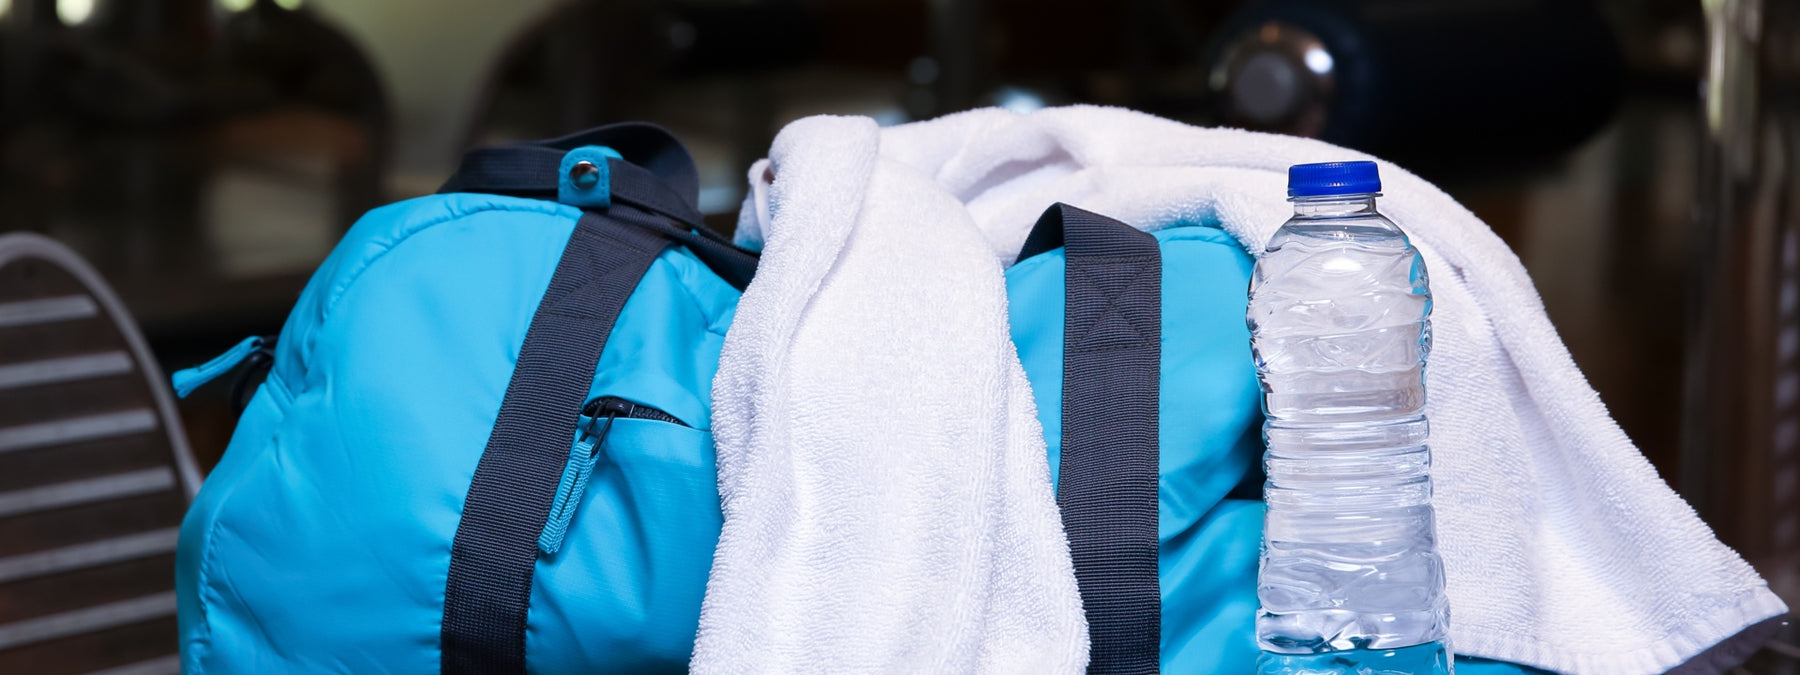 Name Something You Must Have in Your Gym Bag? (Poll)